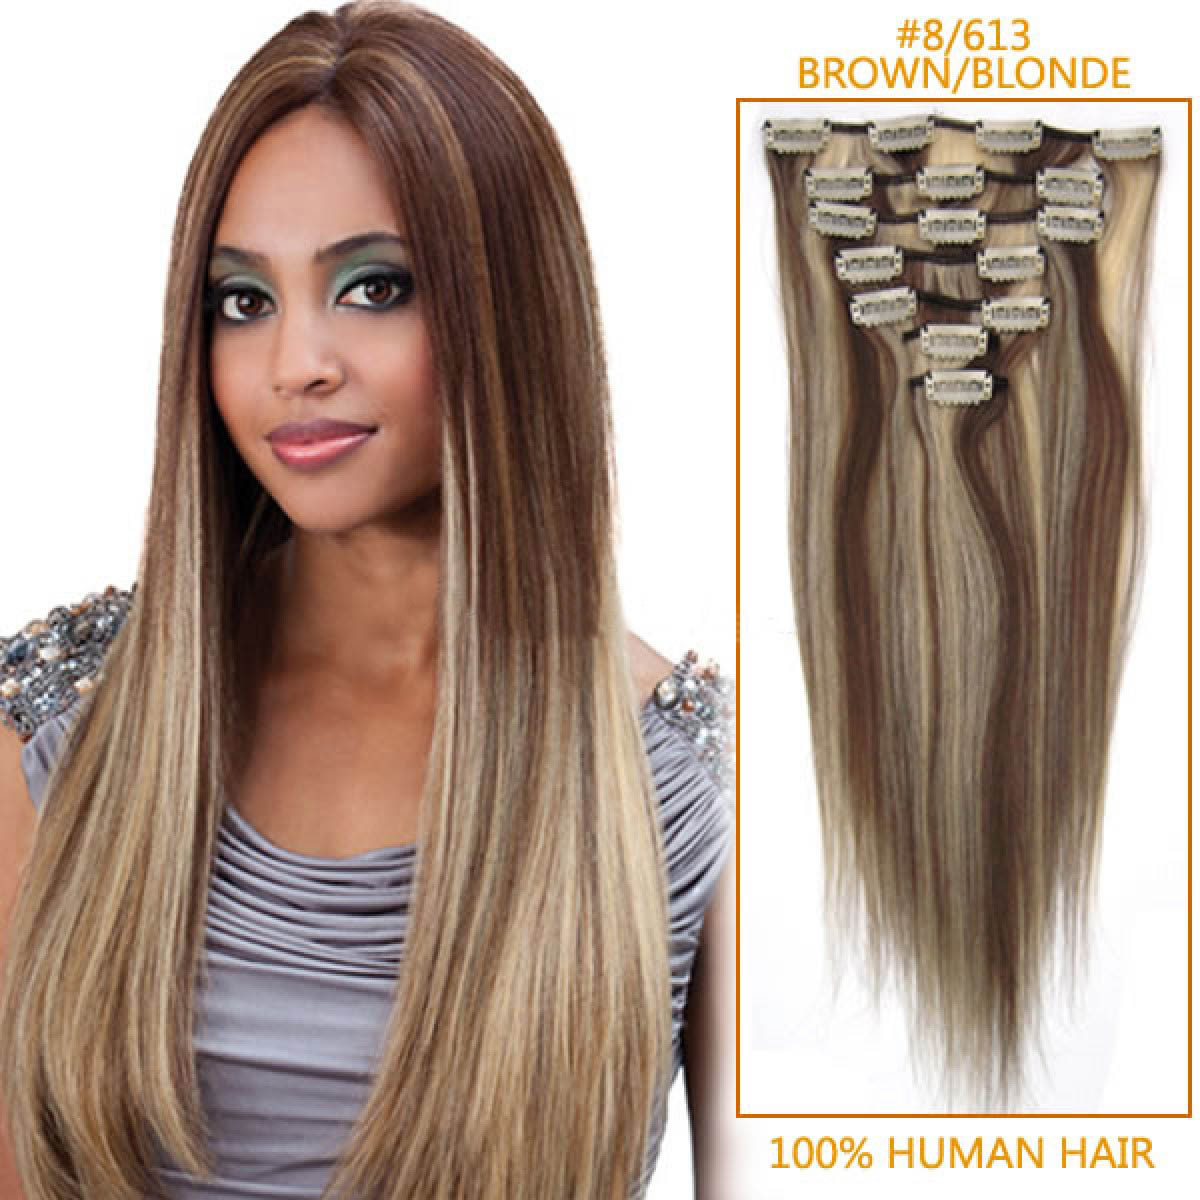 28 Inch #8/613 Brown/Blonde Clip In Human Hair Extensions 11pcs